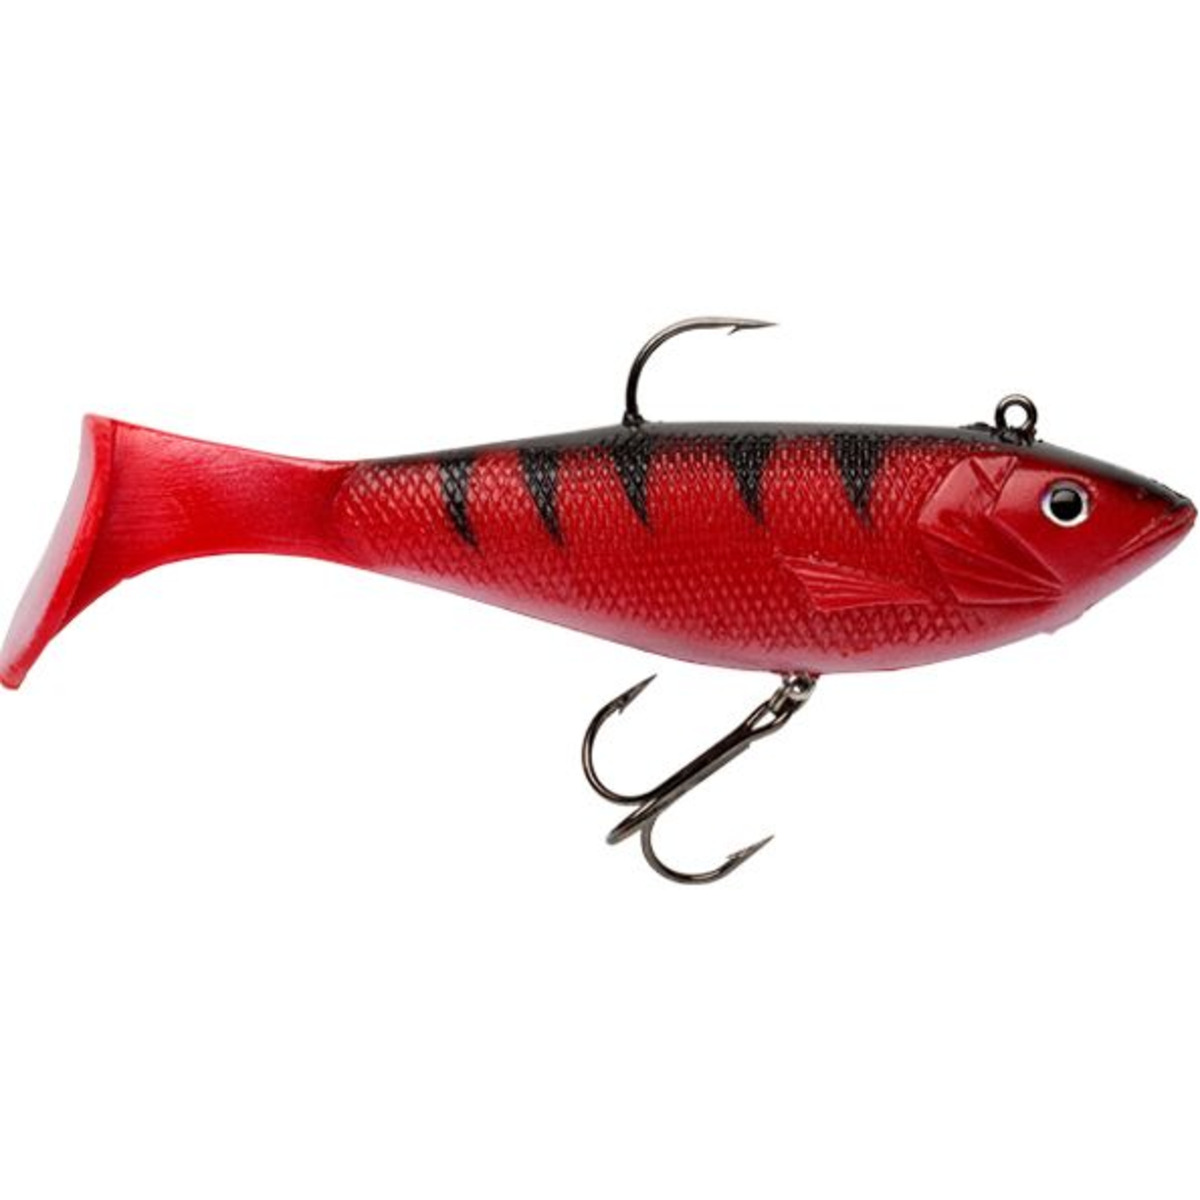 Storm Suspending Wild Tail Shad - 20 cm - 65 g - Pearl Belly Demon